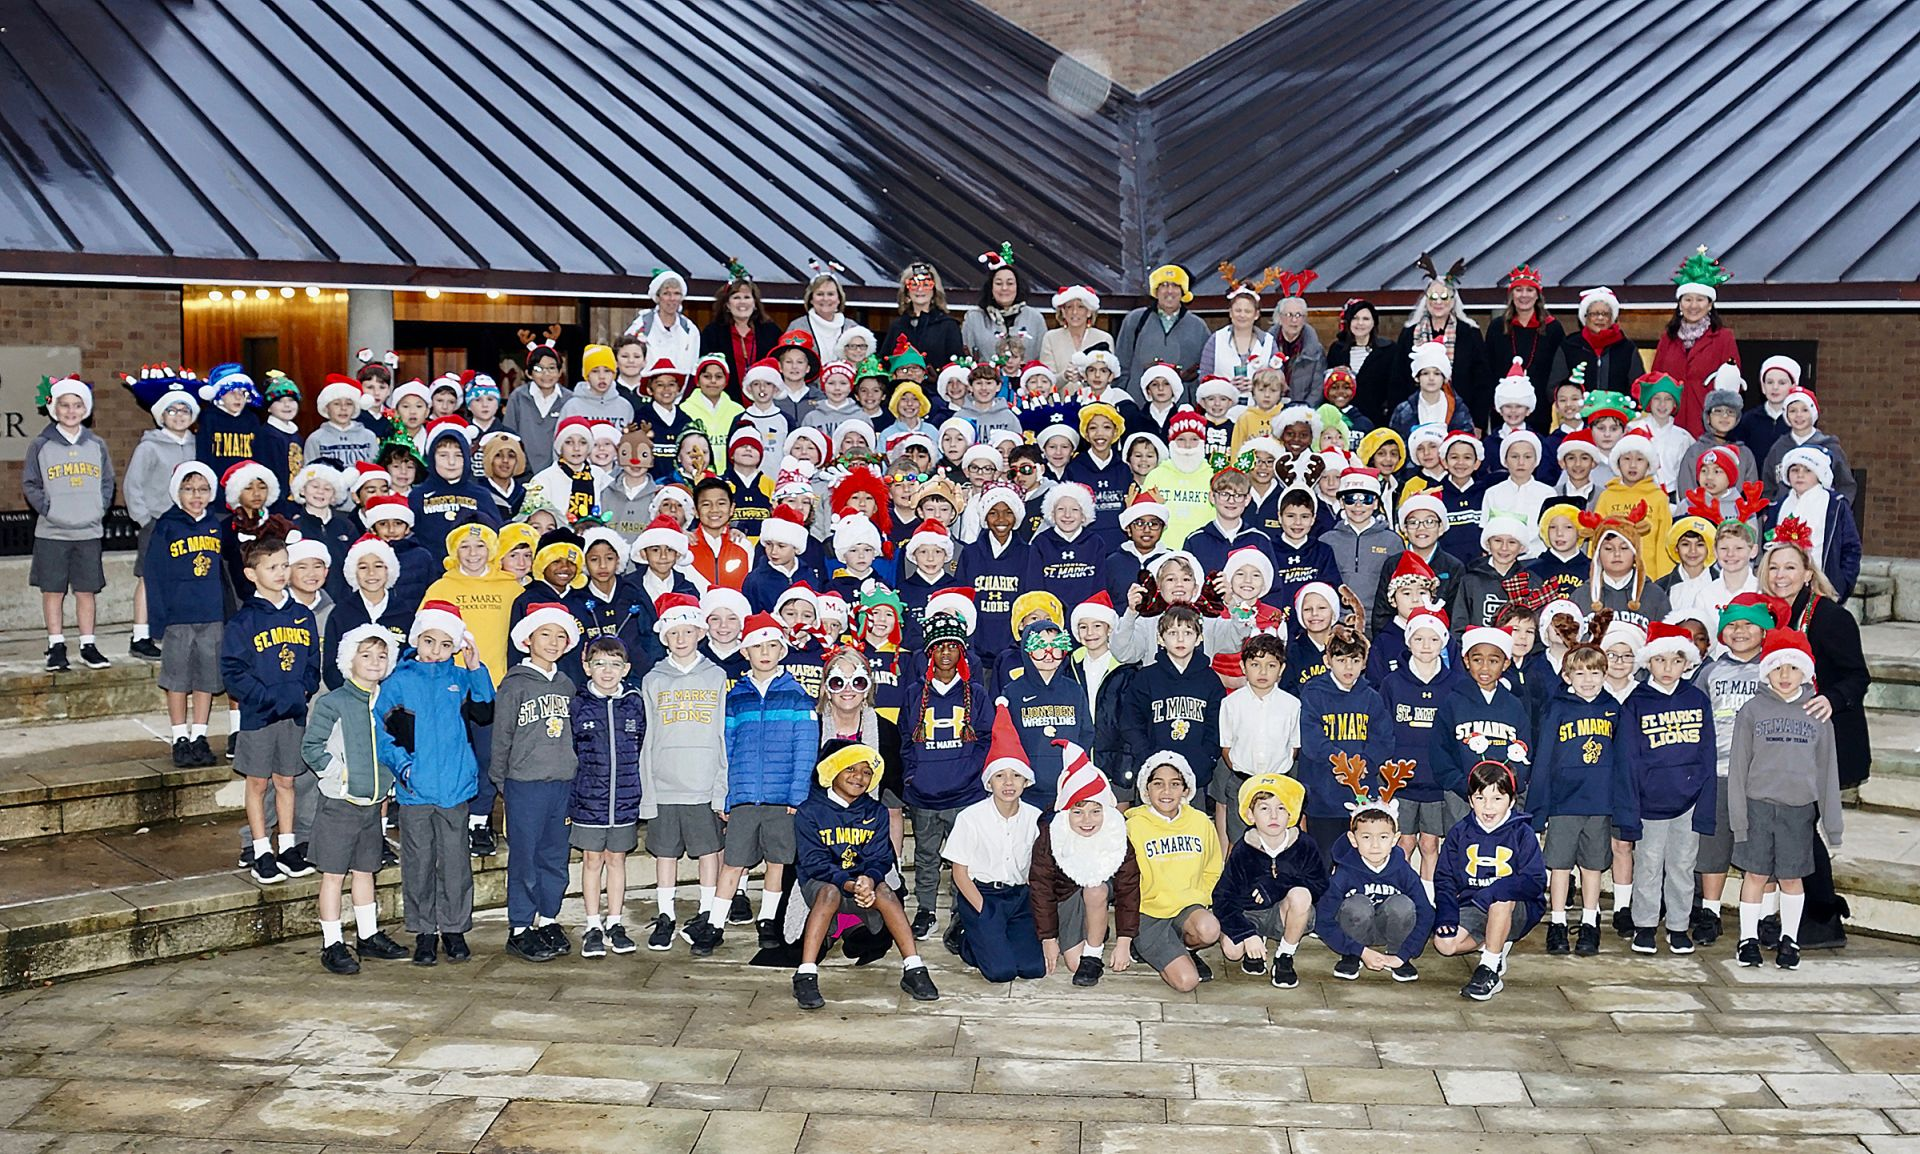 The Lower School Holiday Hat Photo